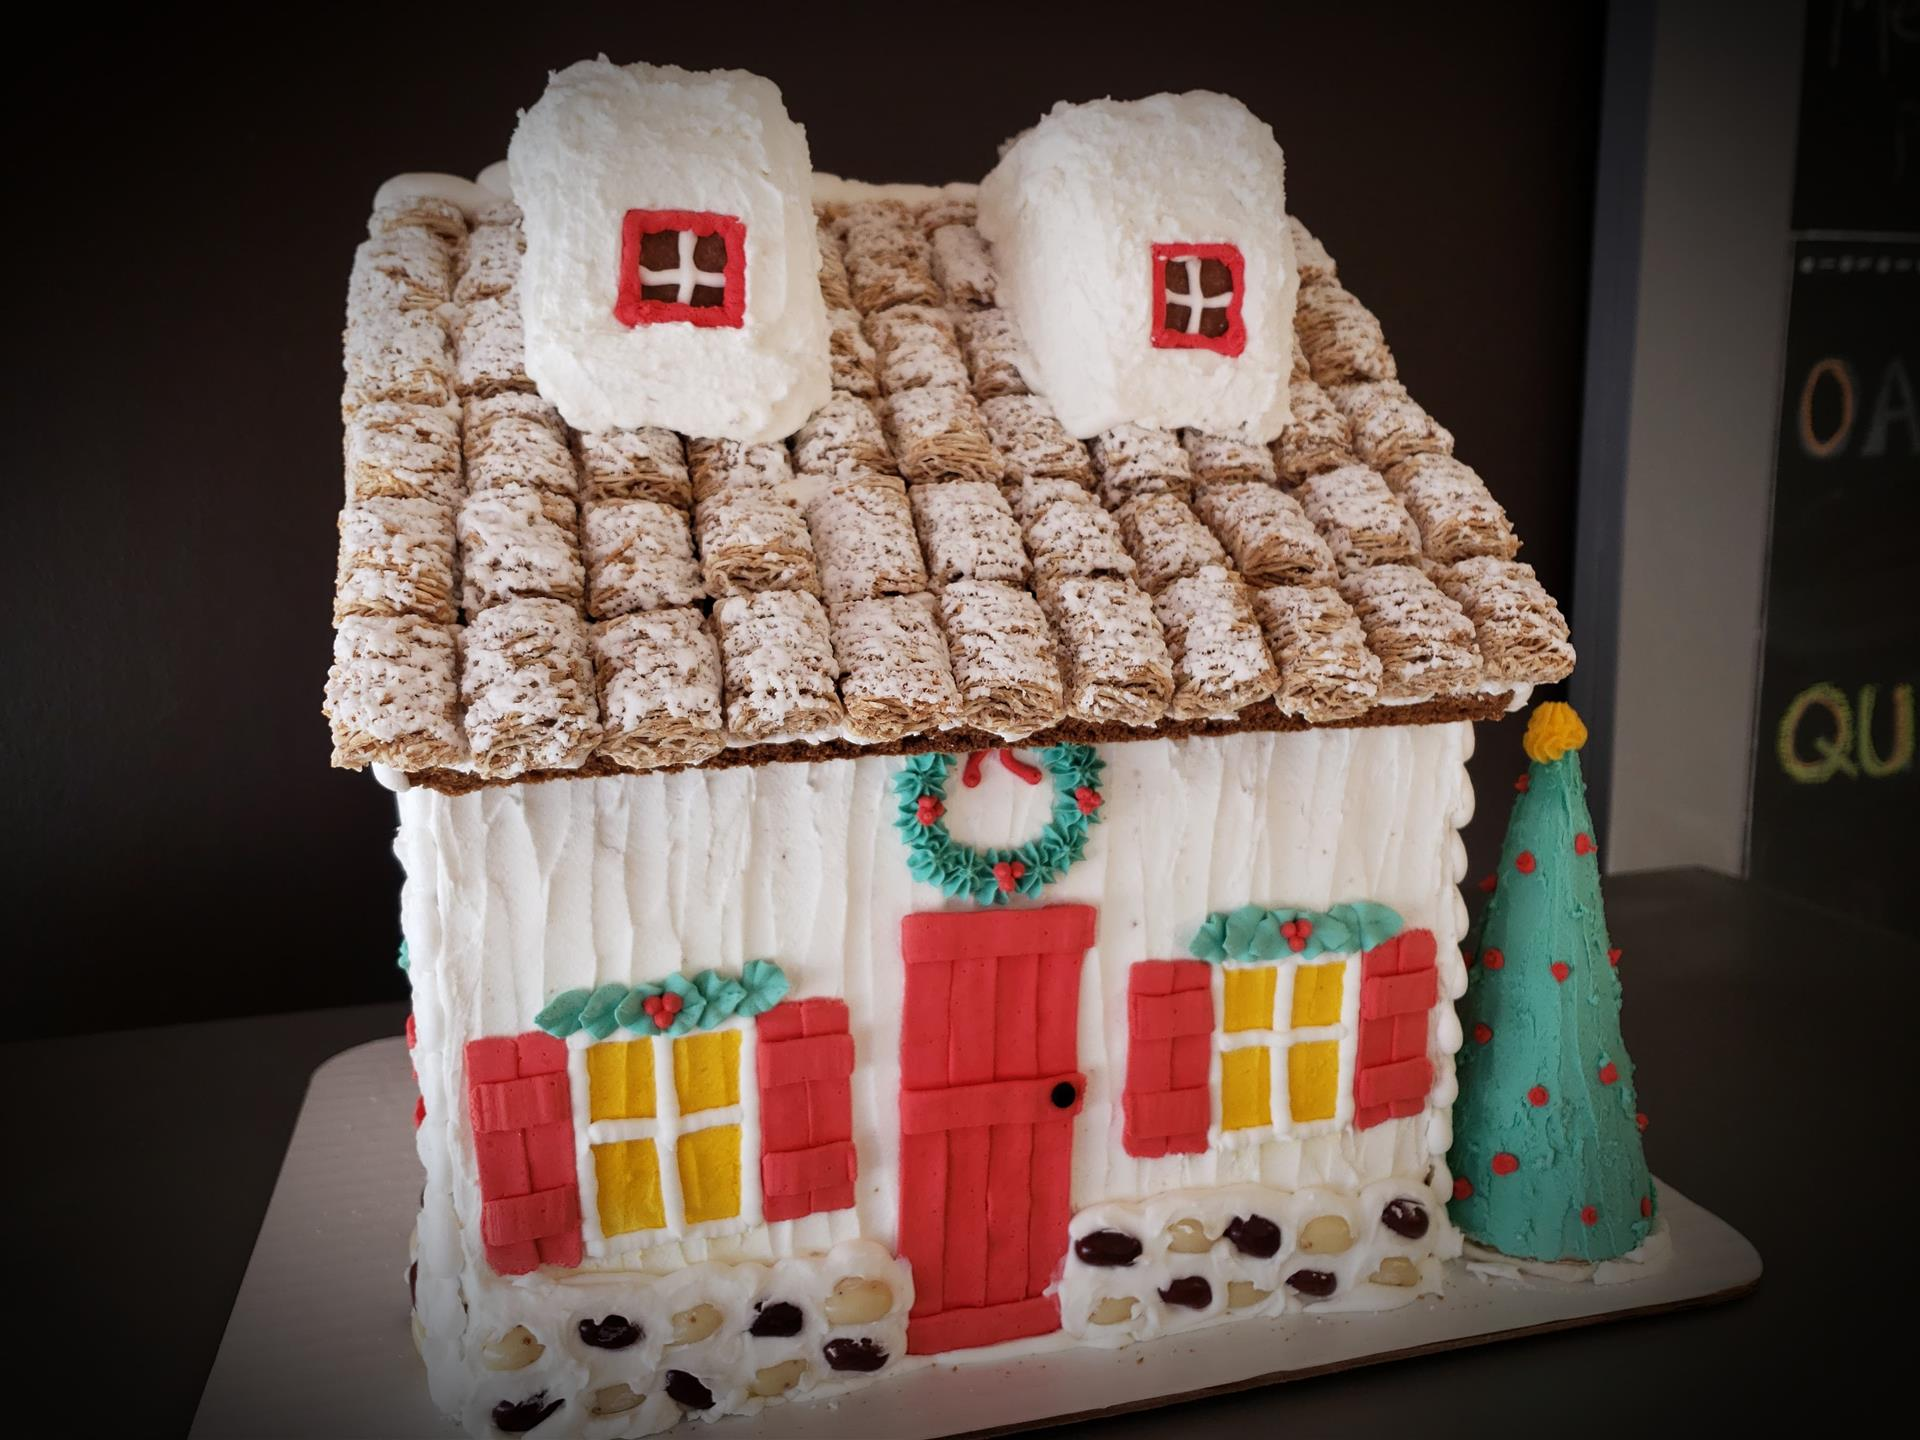 2019 Gingerbread house